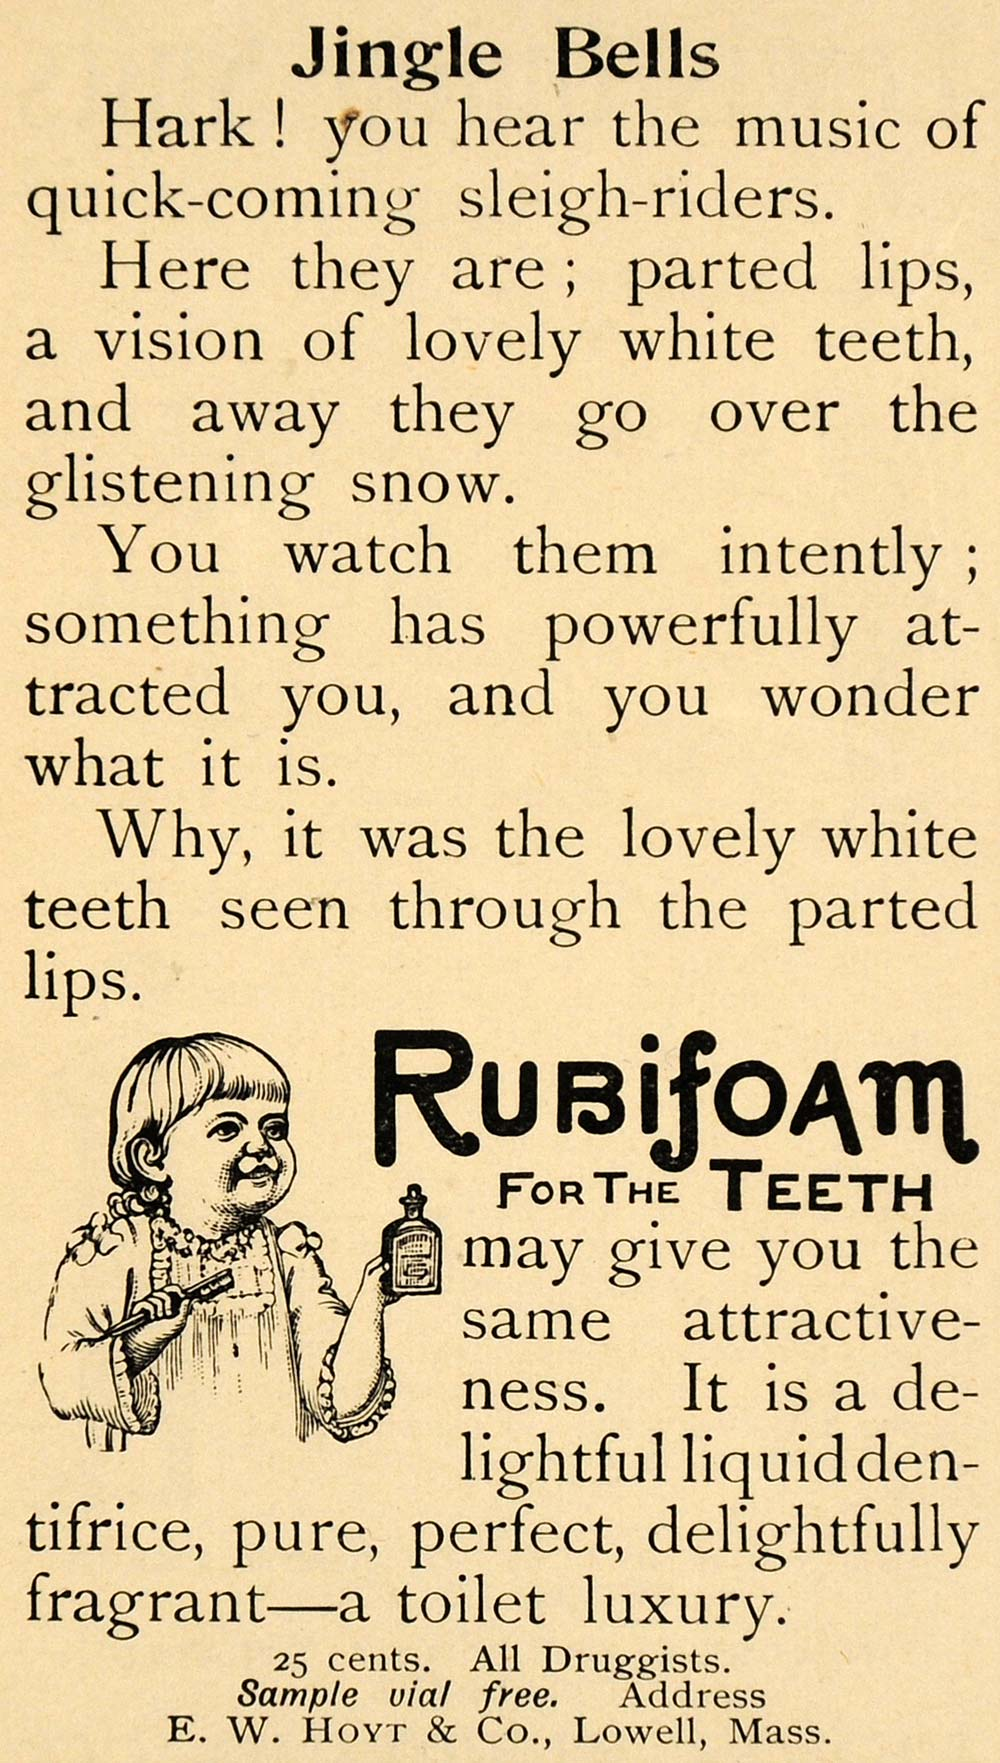 1893 Ad E W Hoyt Rubifoam Teeth Liquid Dentifrice Child - ORIGINAL LHJ4